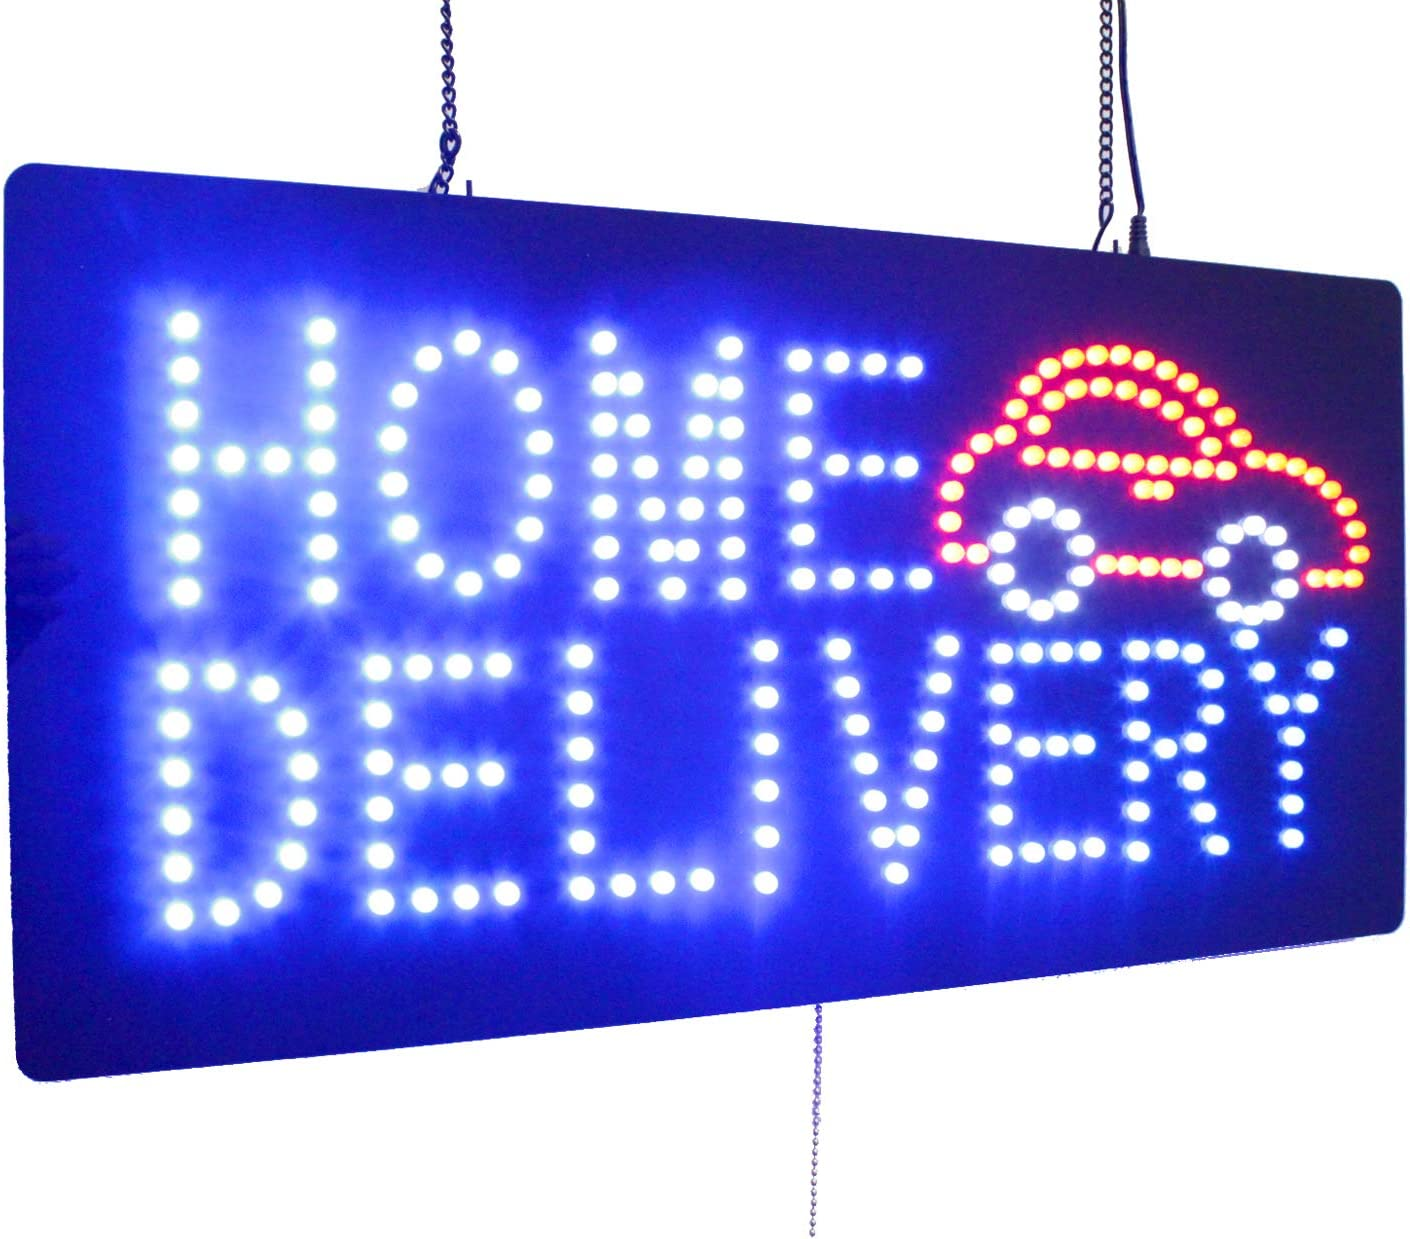 Home Delivery Sign, TOPKING Signage, LED Neon Open, Store, Window, Shop, Business, Display, Grand Opening Gift